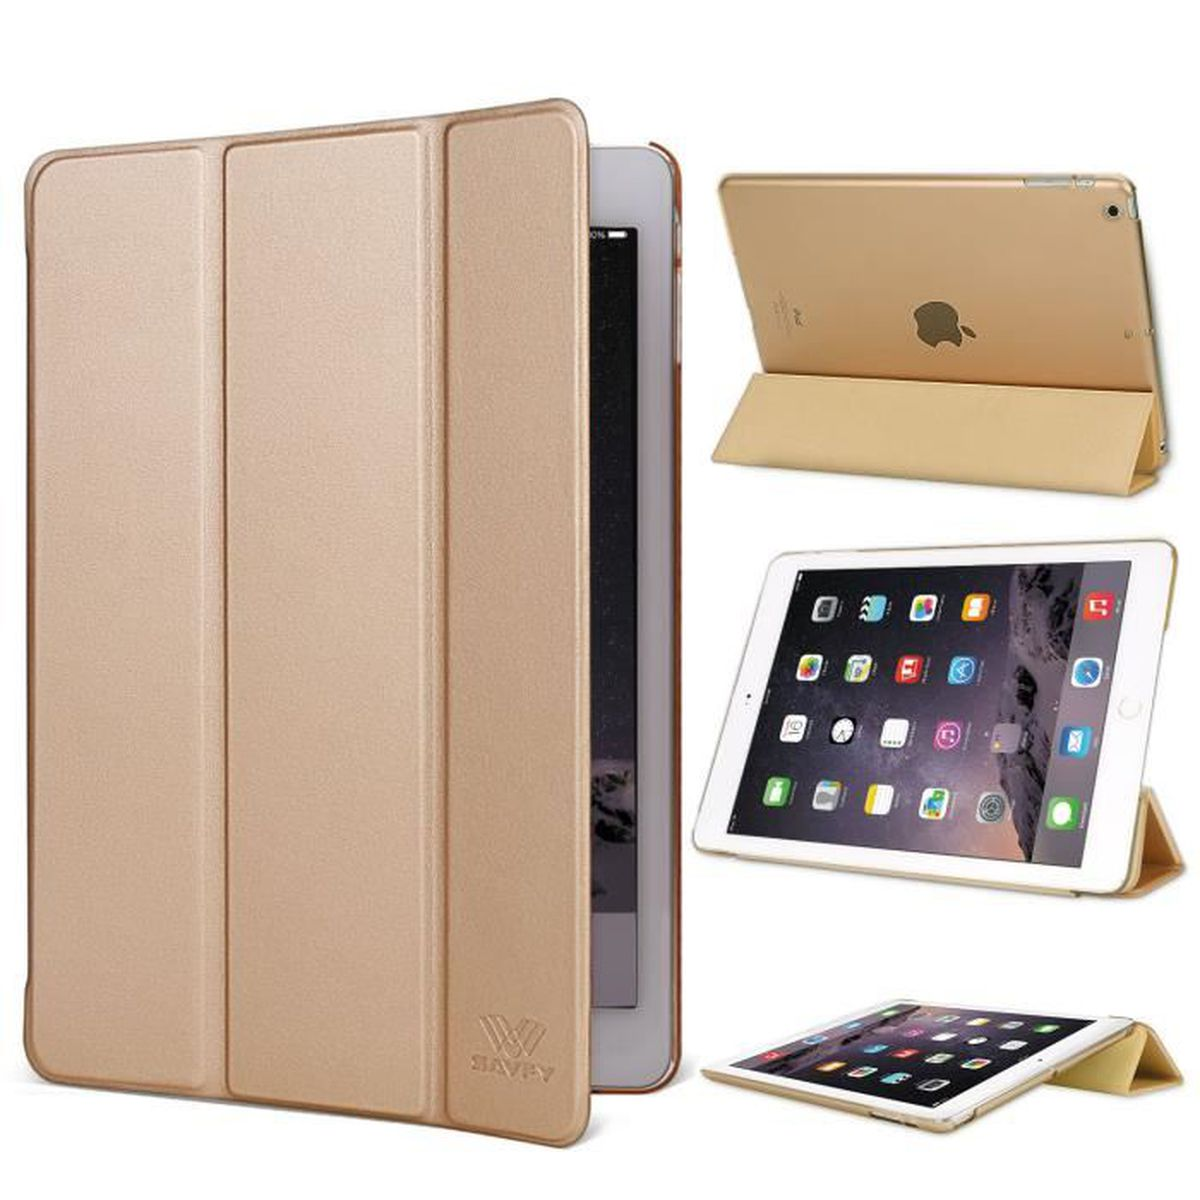 Protege Tablette Ipad Air